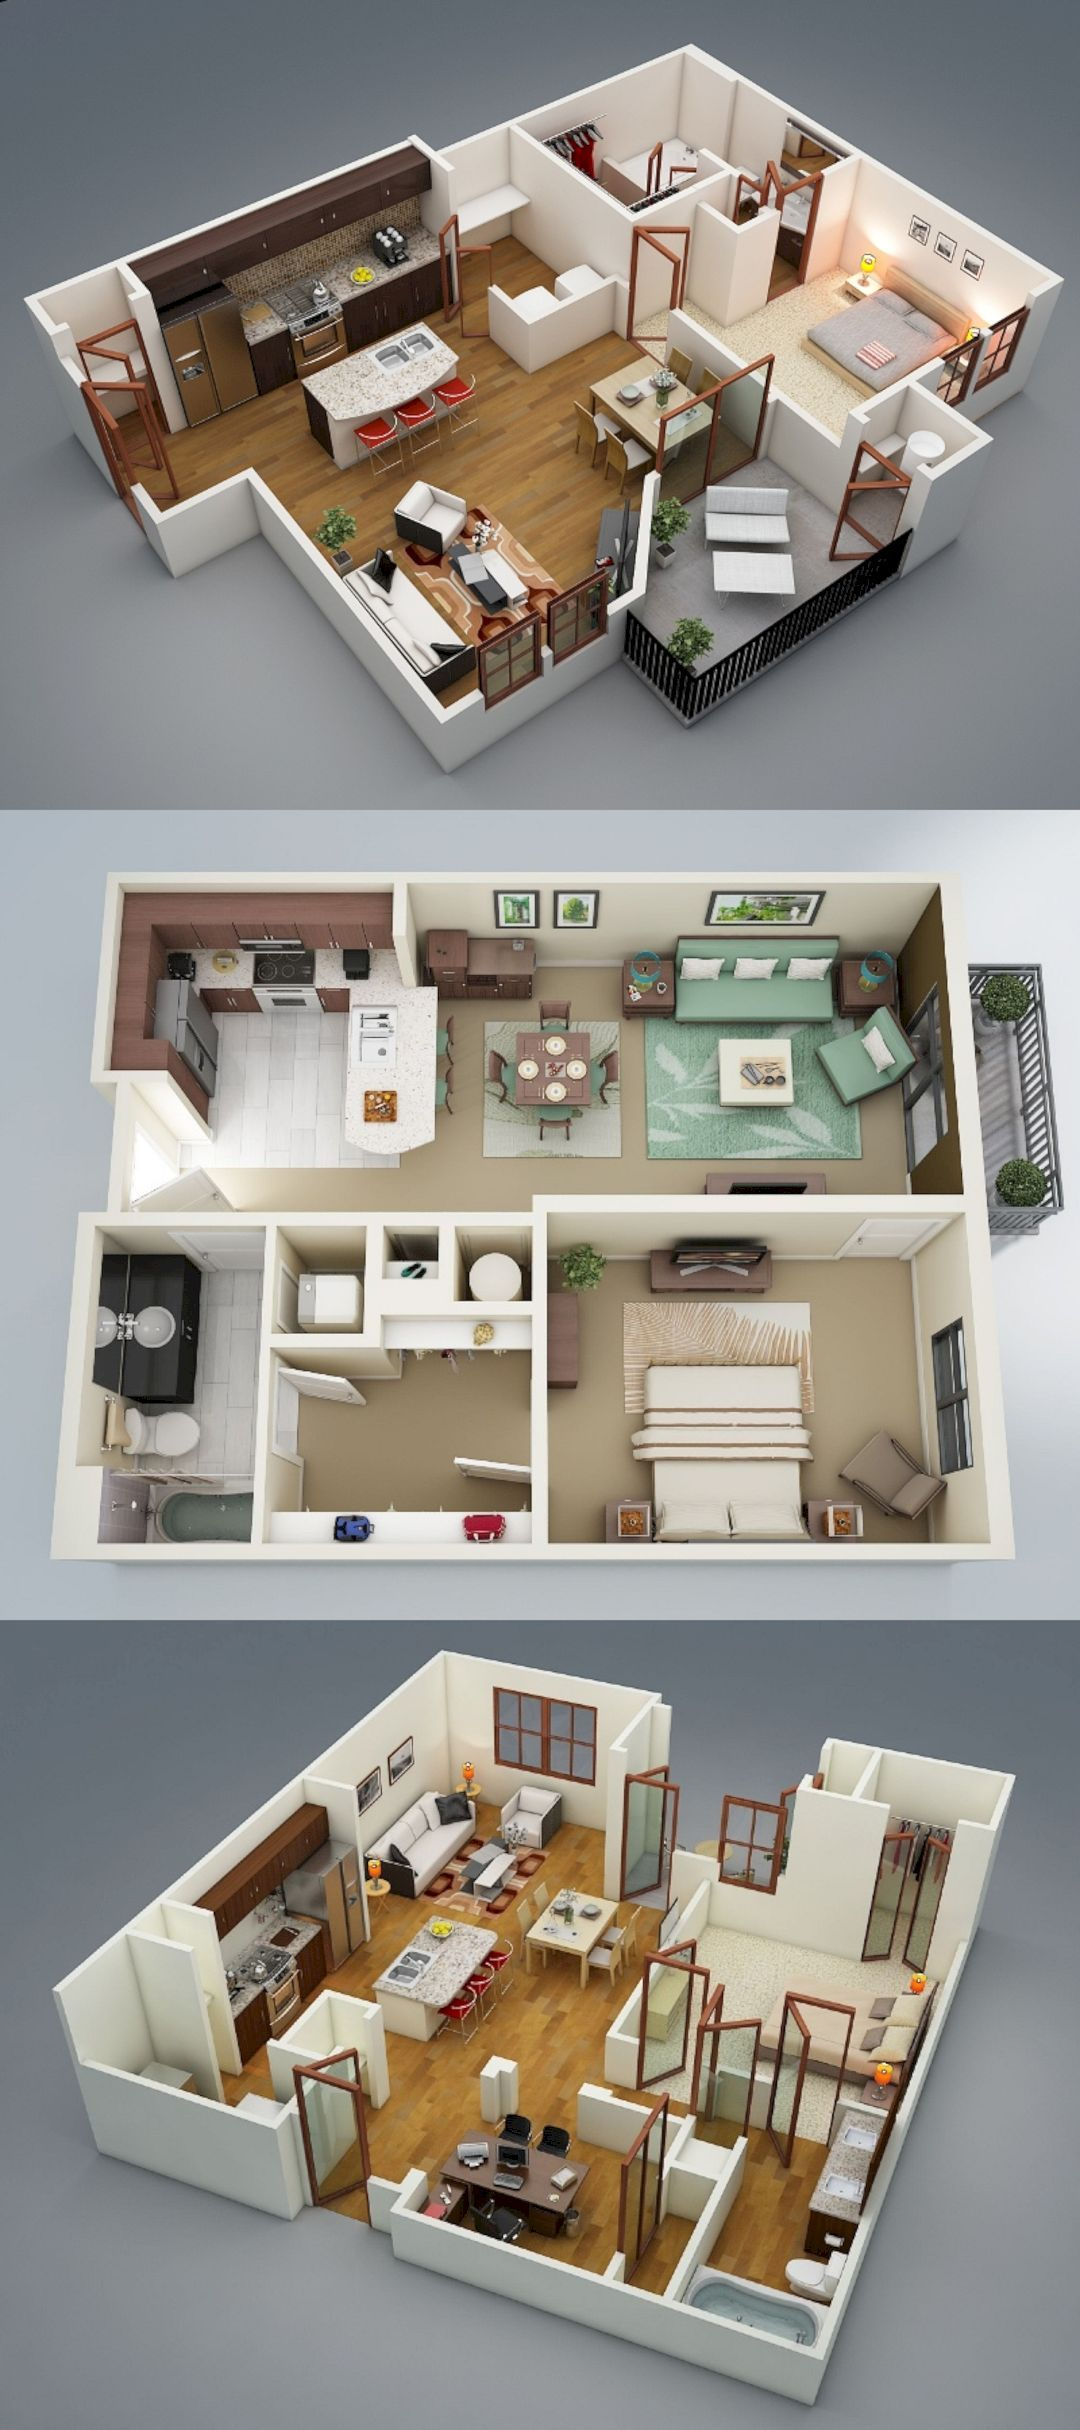 Well Designed 3D House Plan Design Ideas  Https://www.futuristarchitecture.com/23493 3d House Plan.html